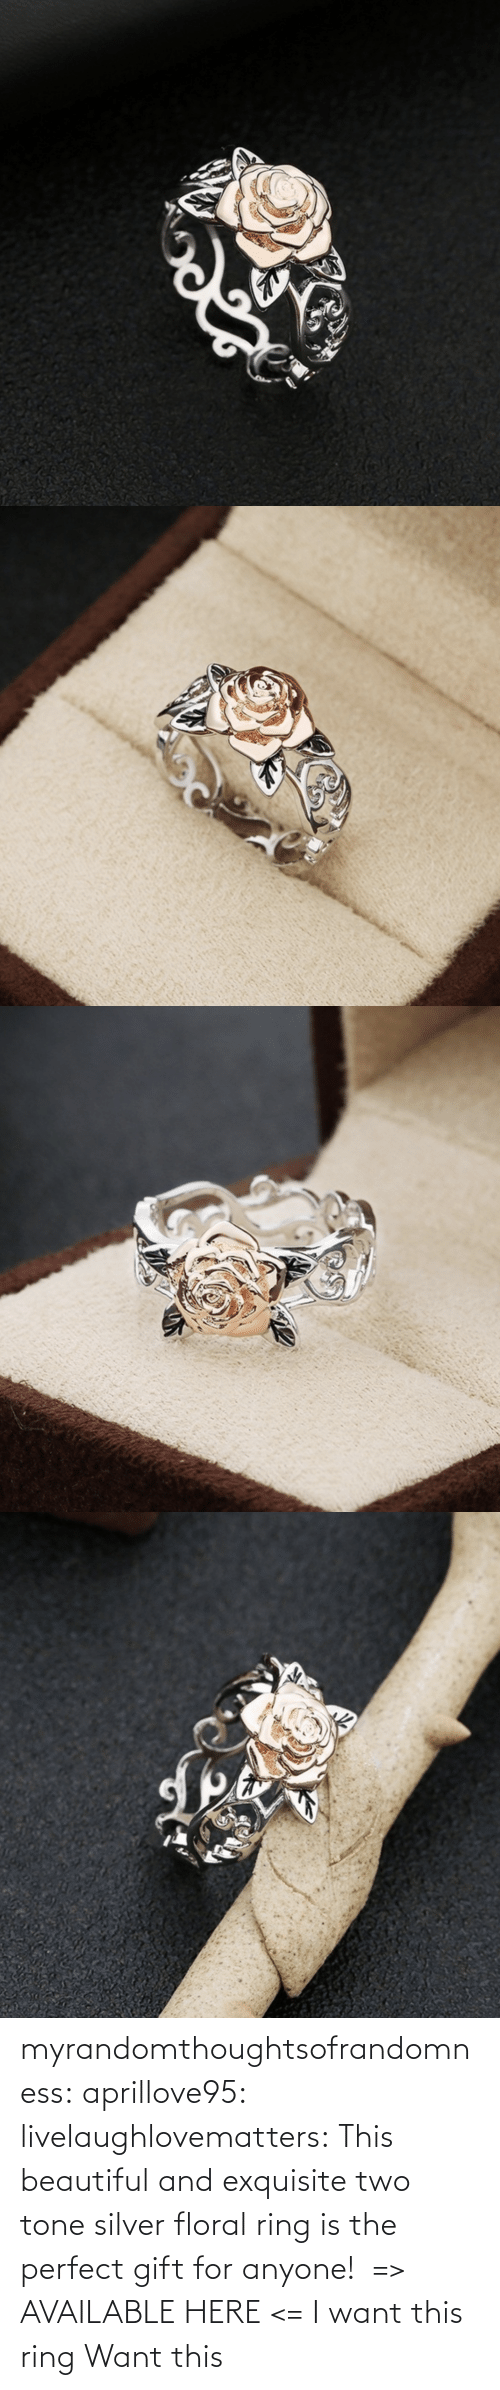 i want this: myrandomthoughtsofrandomness:  aprillove95: livelaughlovematters:  This beautiful and exquisite two tone silver floral ring is the perfect gift for anyone!  => AVAILABLE HERE <=    I want this ring     Want this